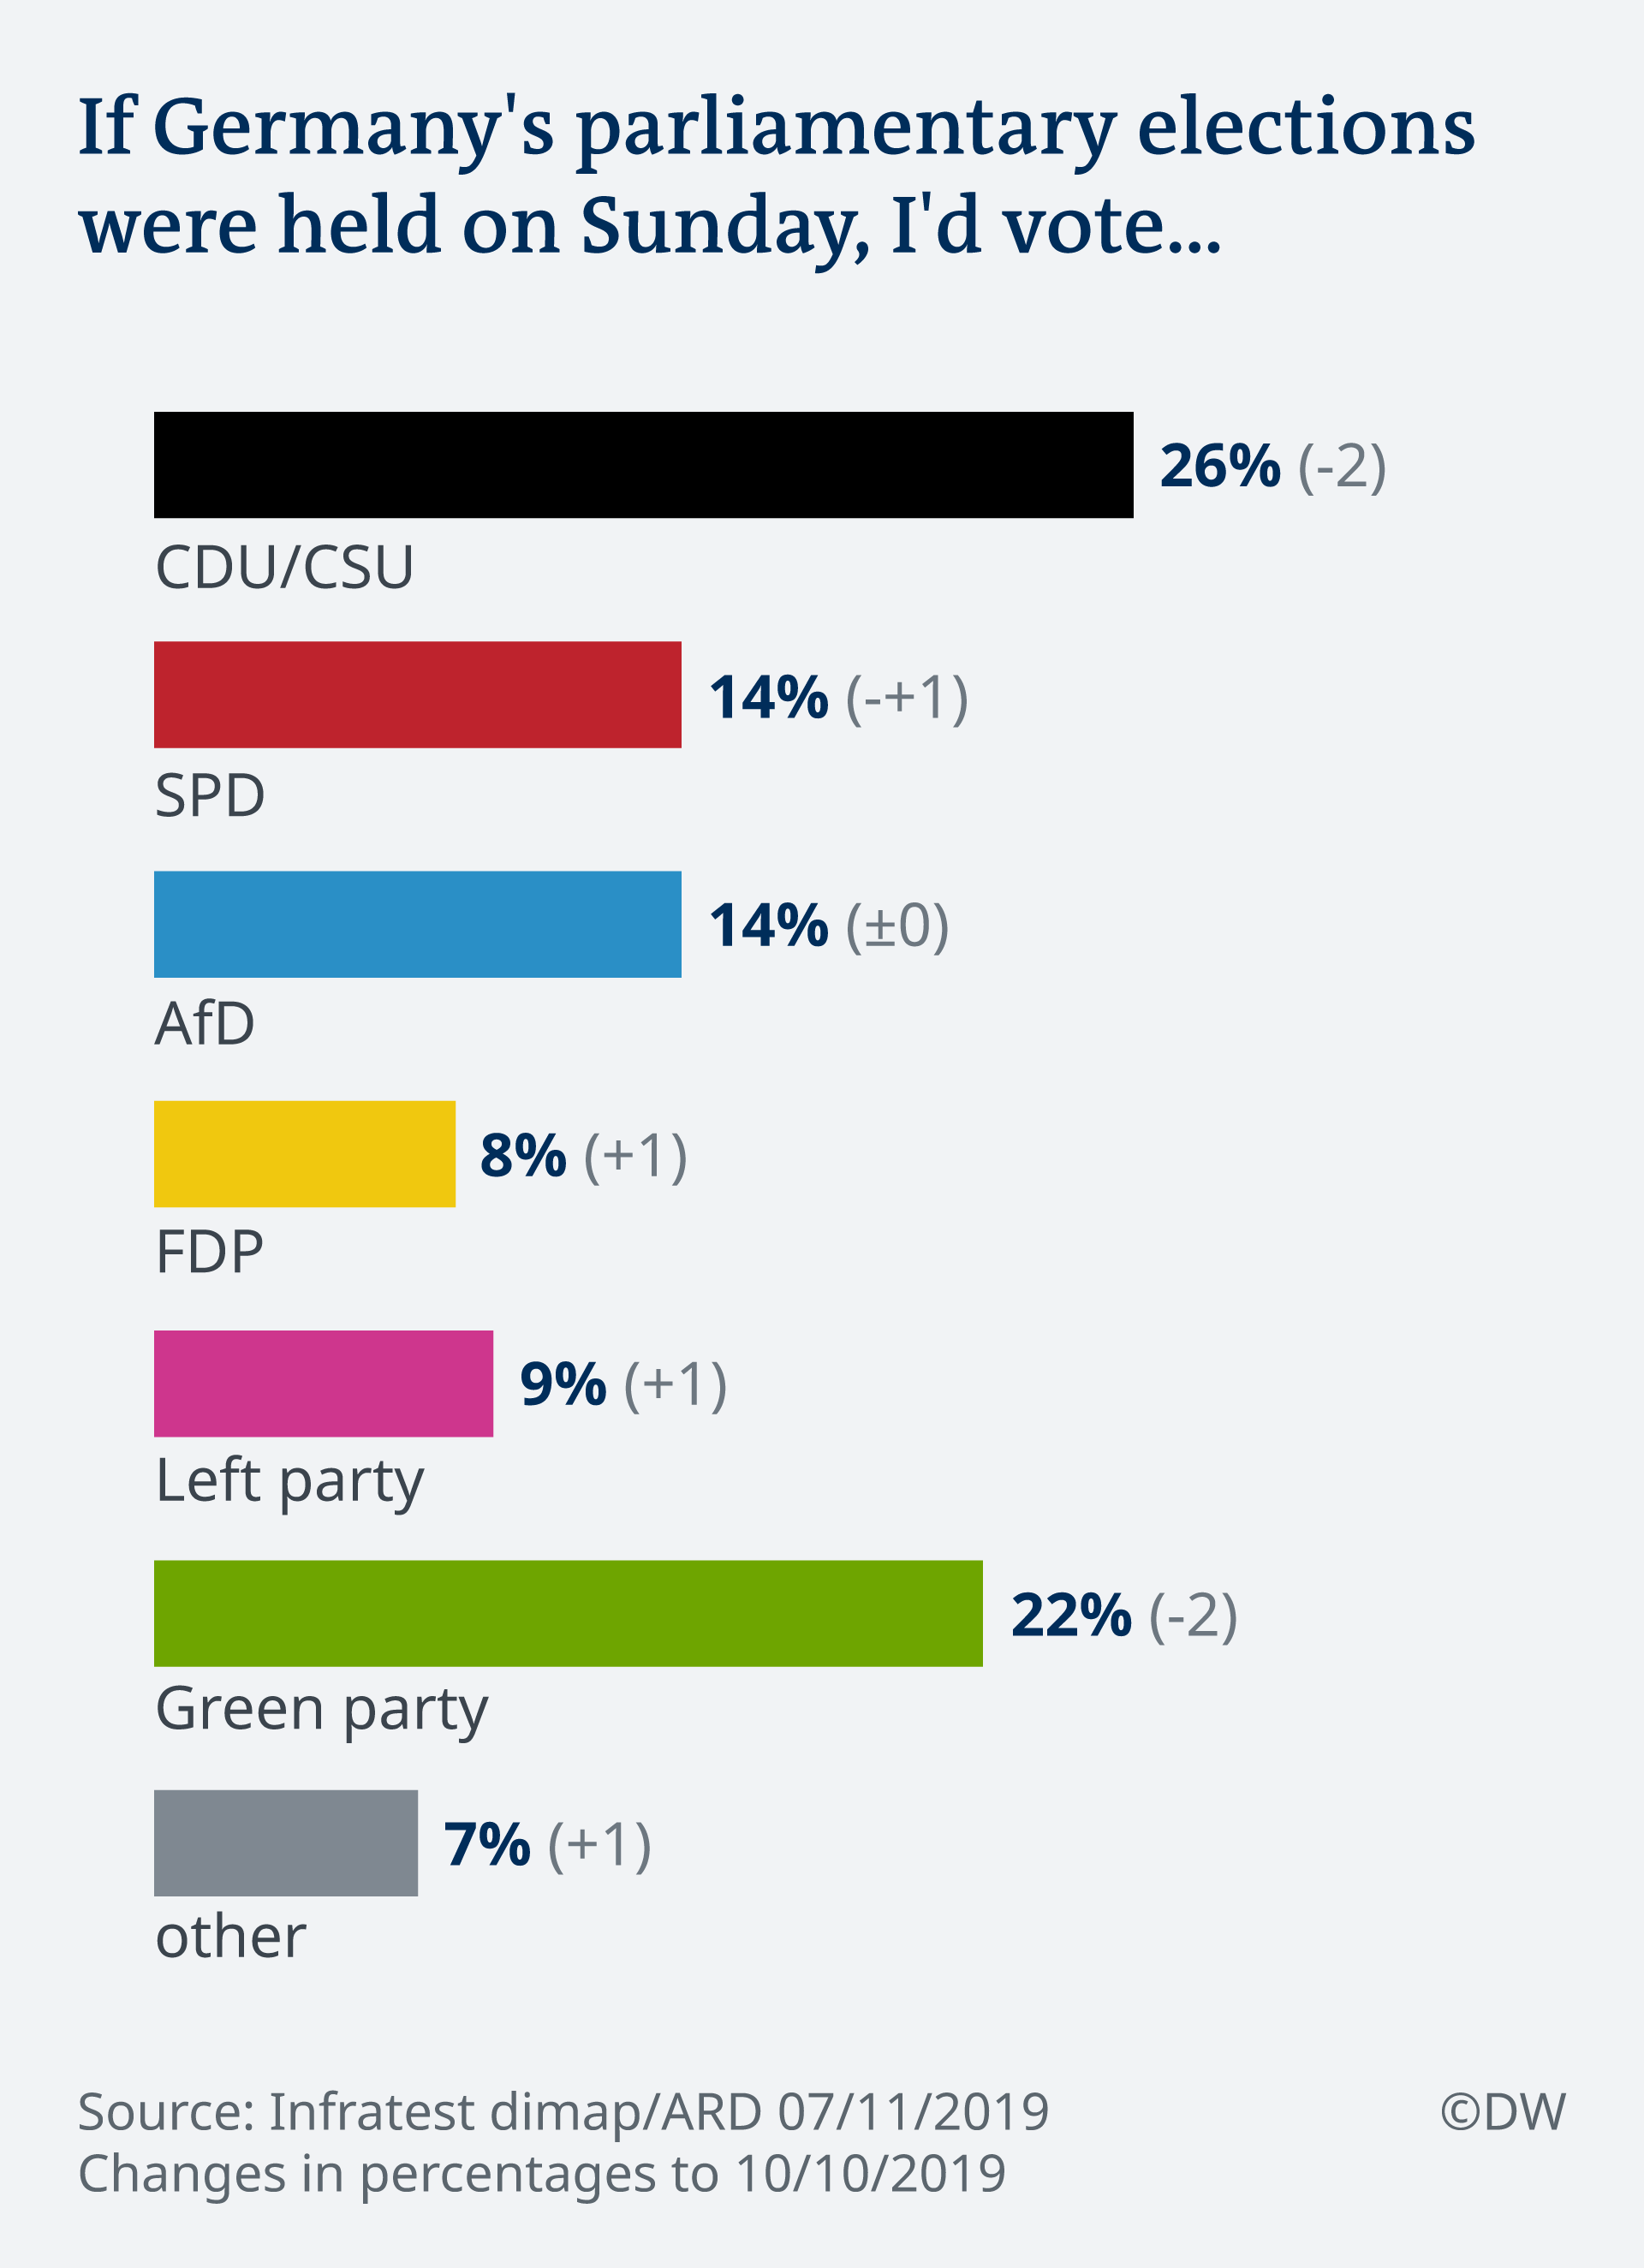 DeutschlandTrend national party popularity survey